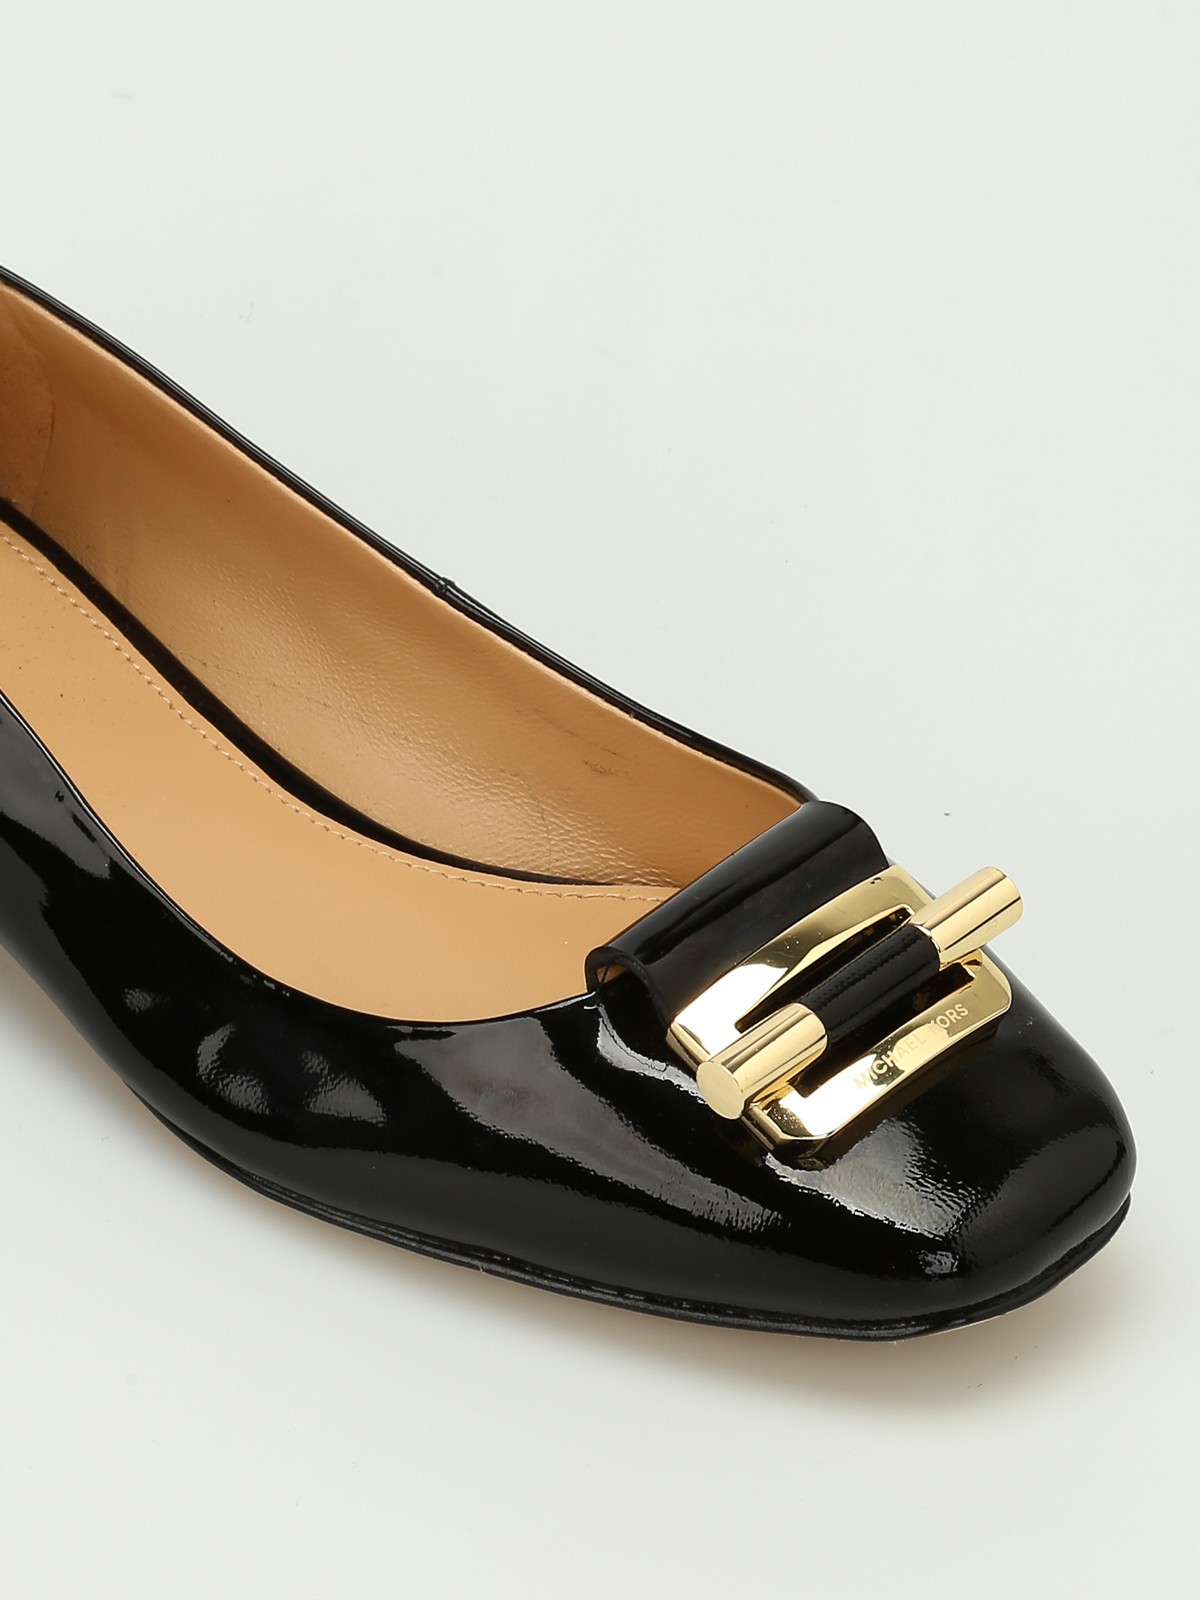 Alexander Mcqueen Flat Shoes Sale